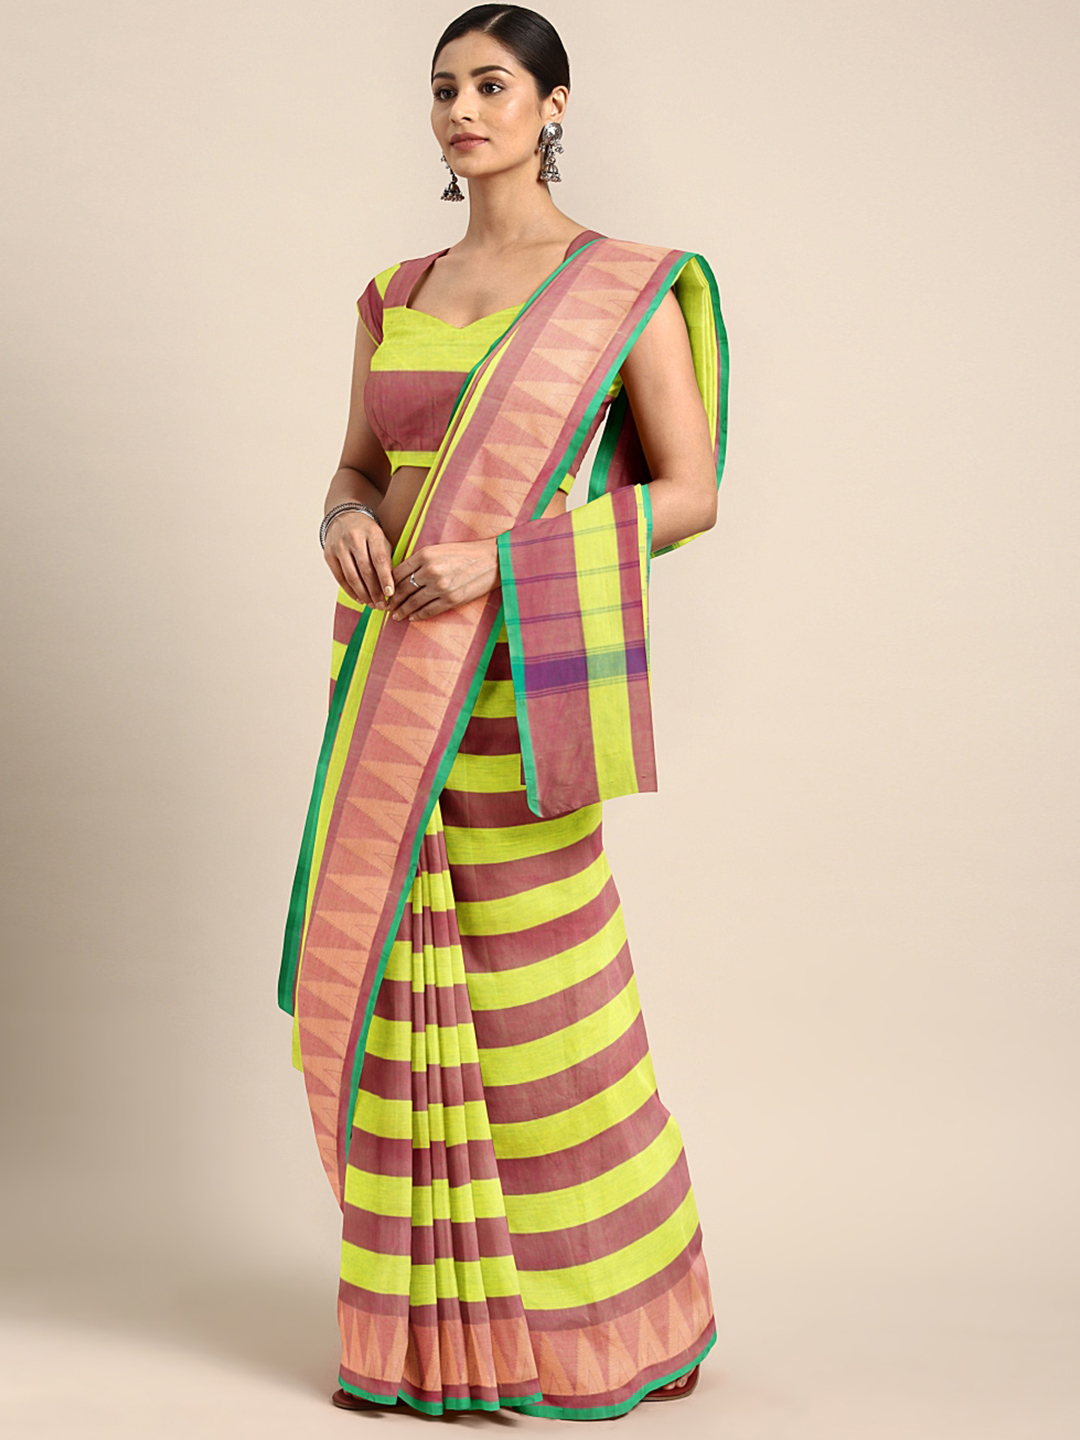 The Chennai Silks Fluorescent Green & Brown Pure Chettinad Cotton Striped Saree Price in India